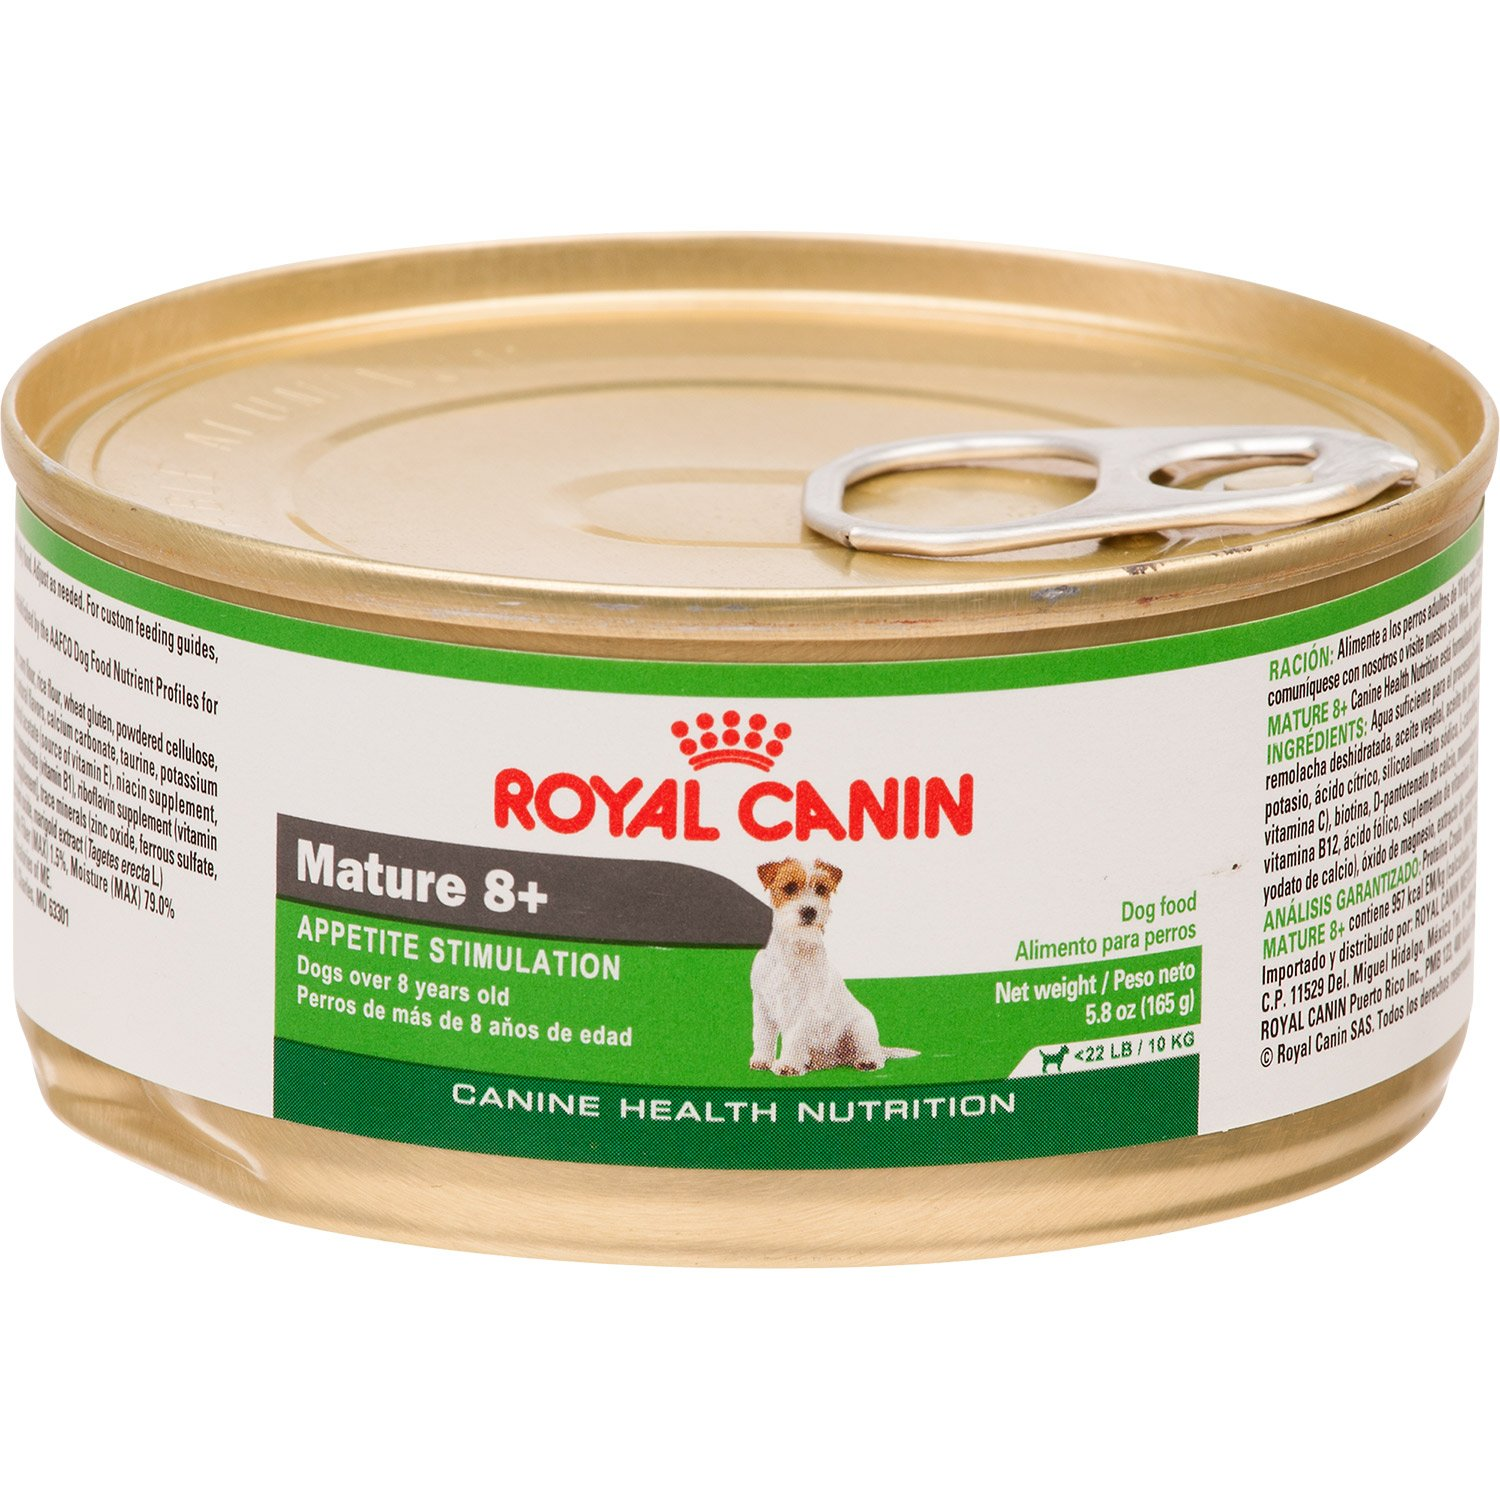 Royal Canin Mature 8 Plus Canine Health Nutrition Canned Senior Dog Food